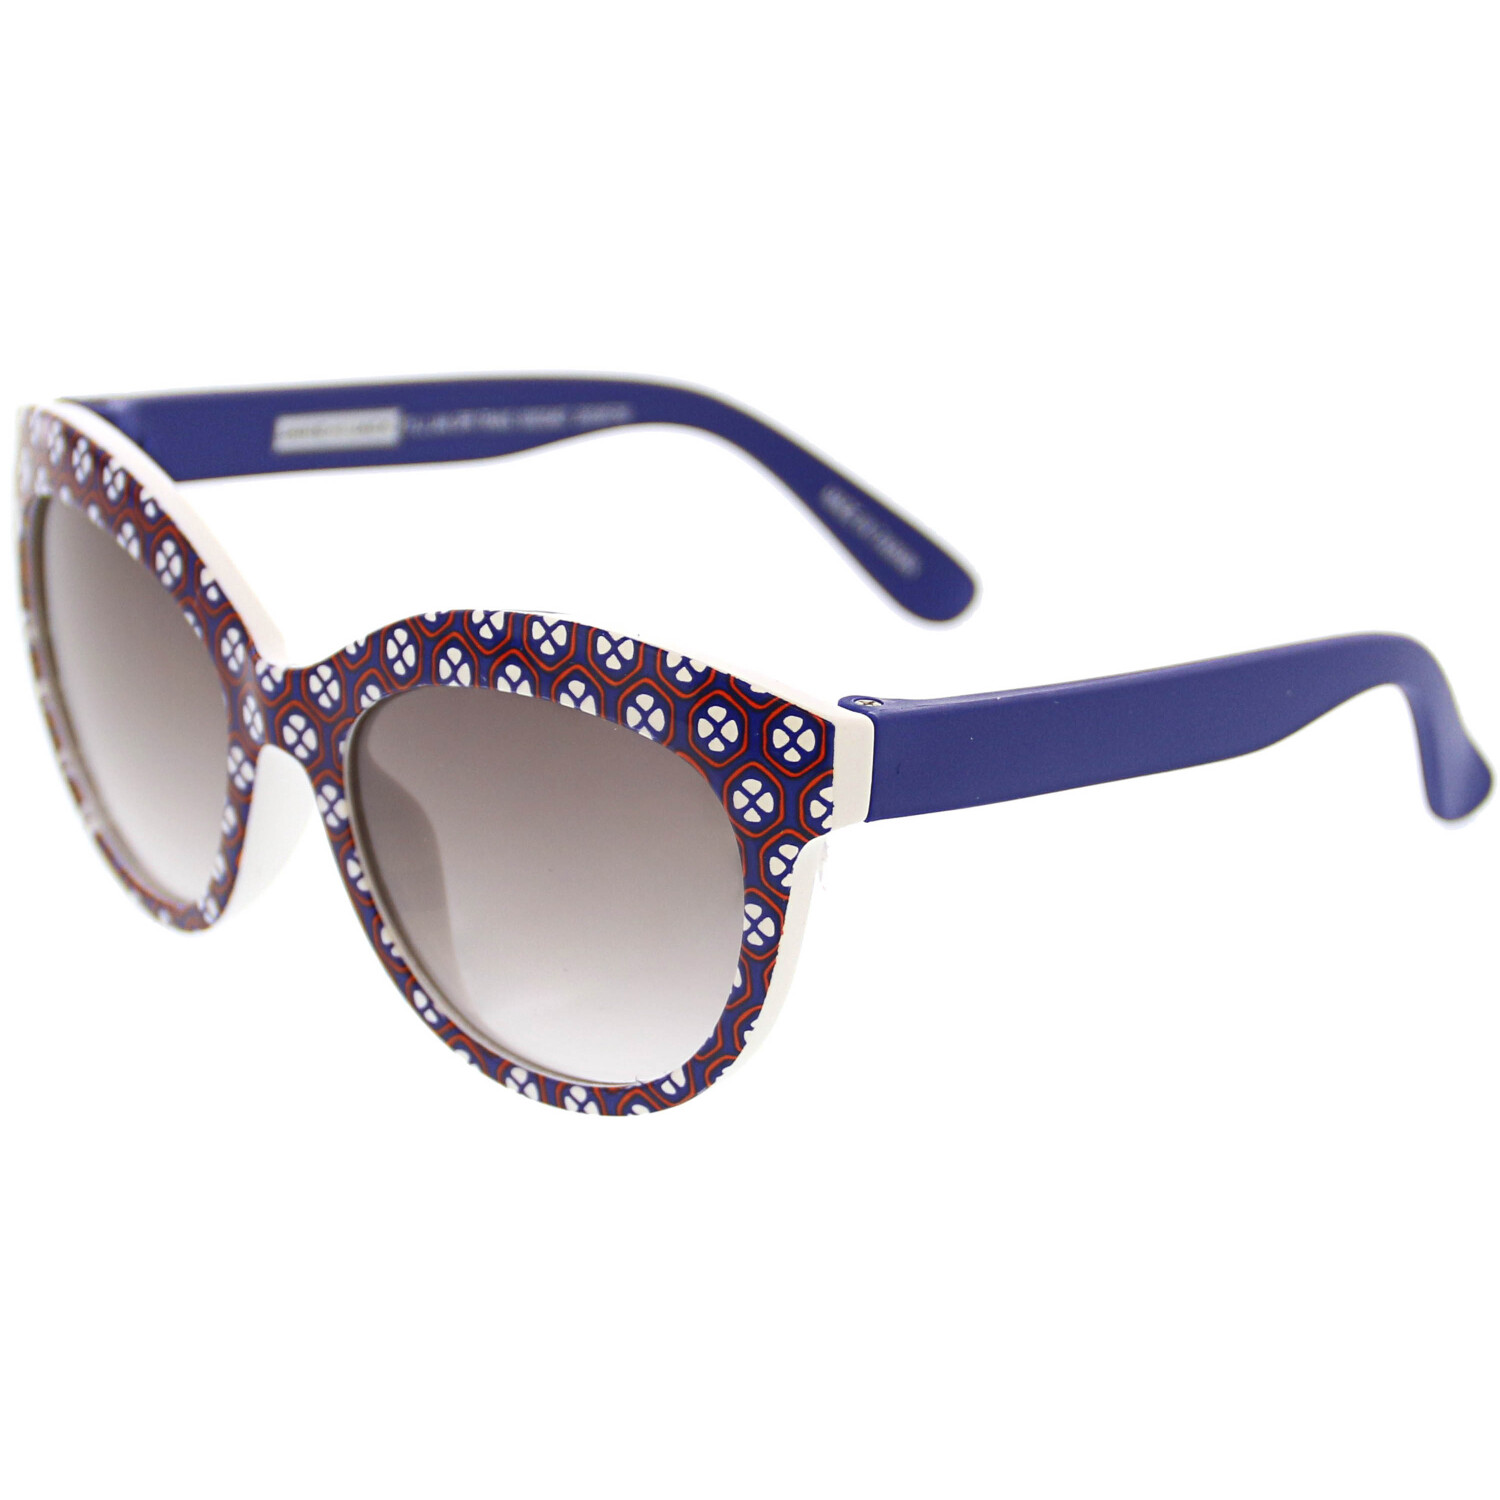 Janie And Jack Geo Floral Sunglasses 4 Up 200385762 Blue Butterfly